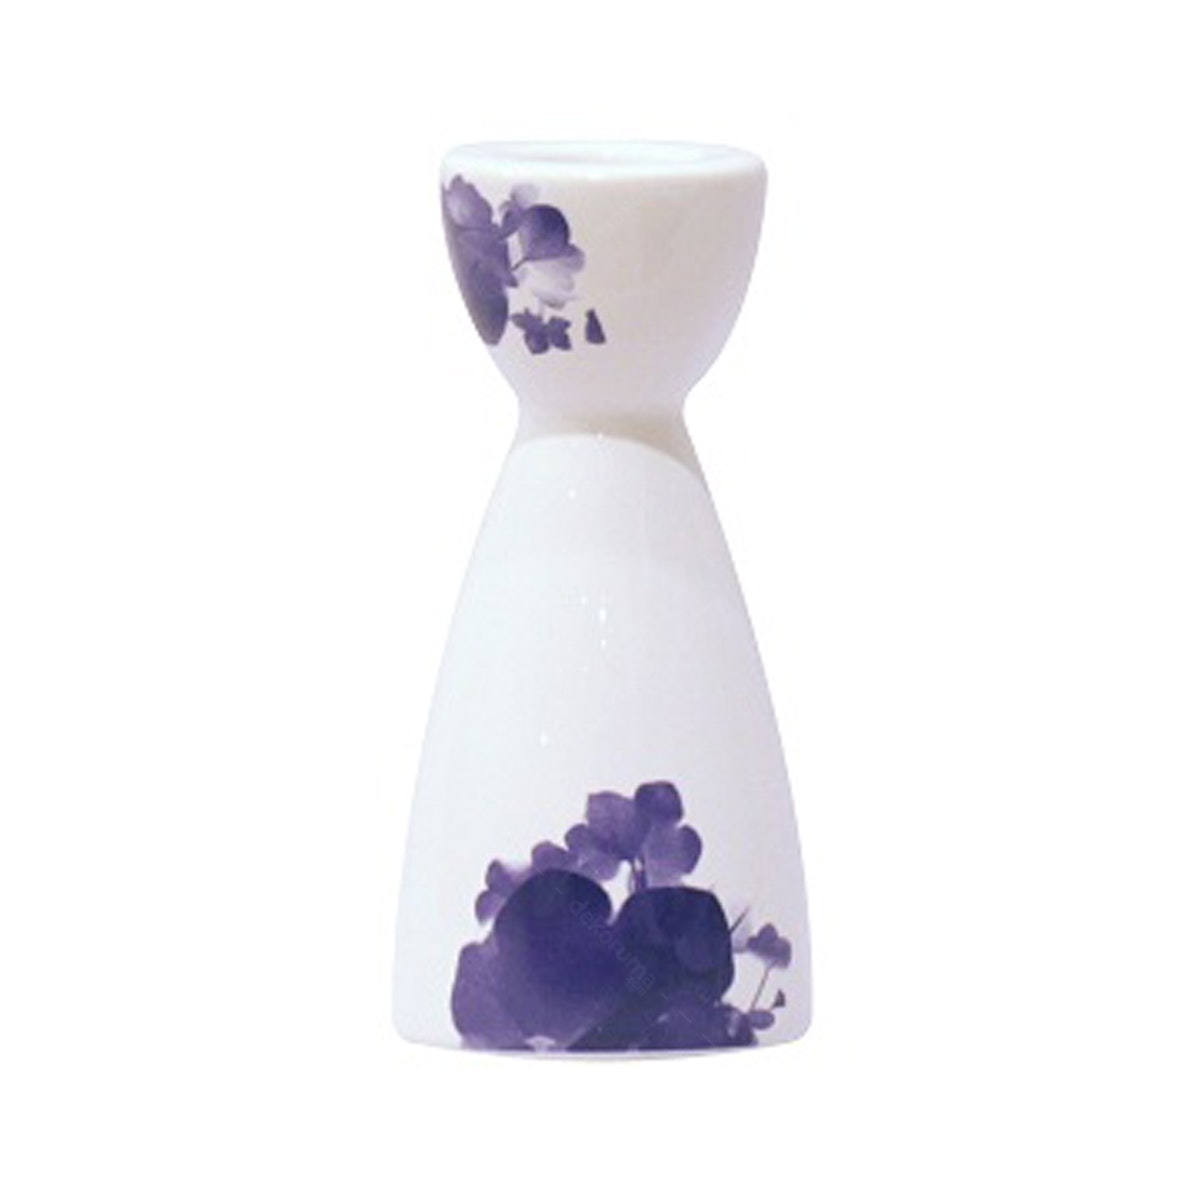 Vivere Tapper Candle Holder Small Flower White Blue 5.5 cm